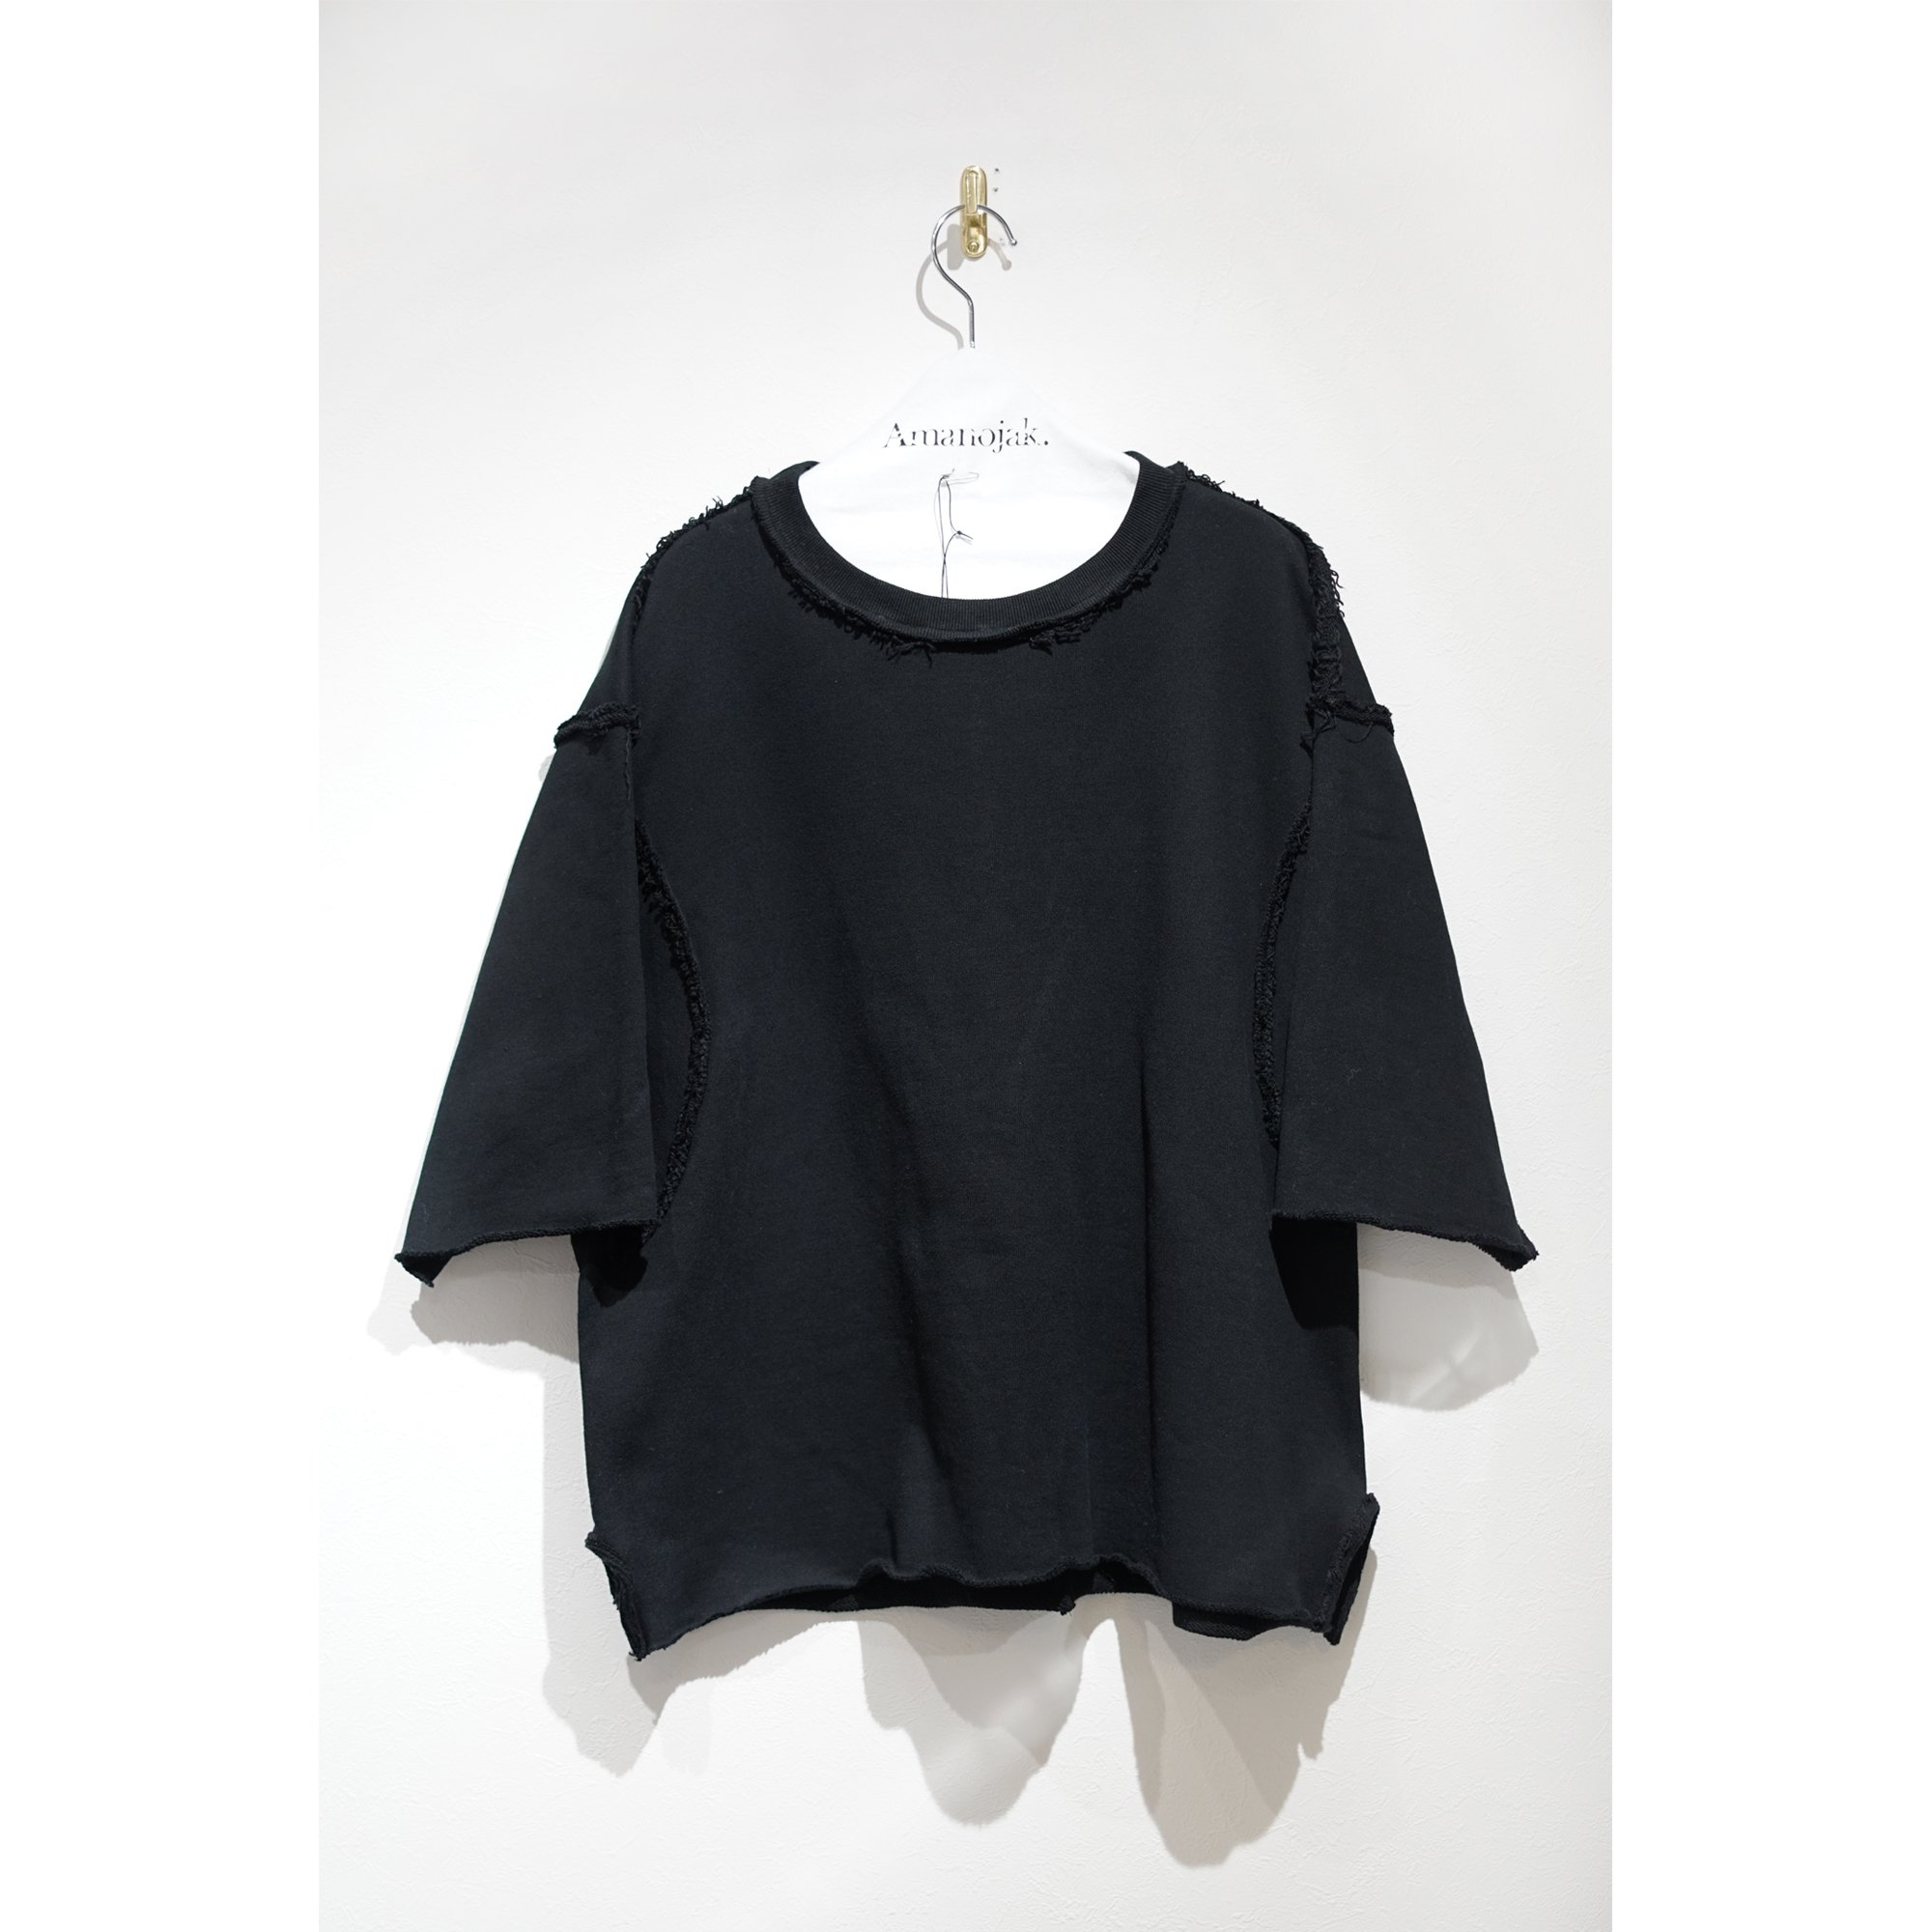 <img class='new_mark_img1' src='https://img.shop-pro.jp/img/new/icons56.gif' style='border:none;display:inline;margin:0px;padding:0px;width:auto;' />MAINU-SWEAT THUMBS ARMHOLE CREW BLACK